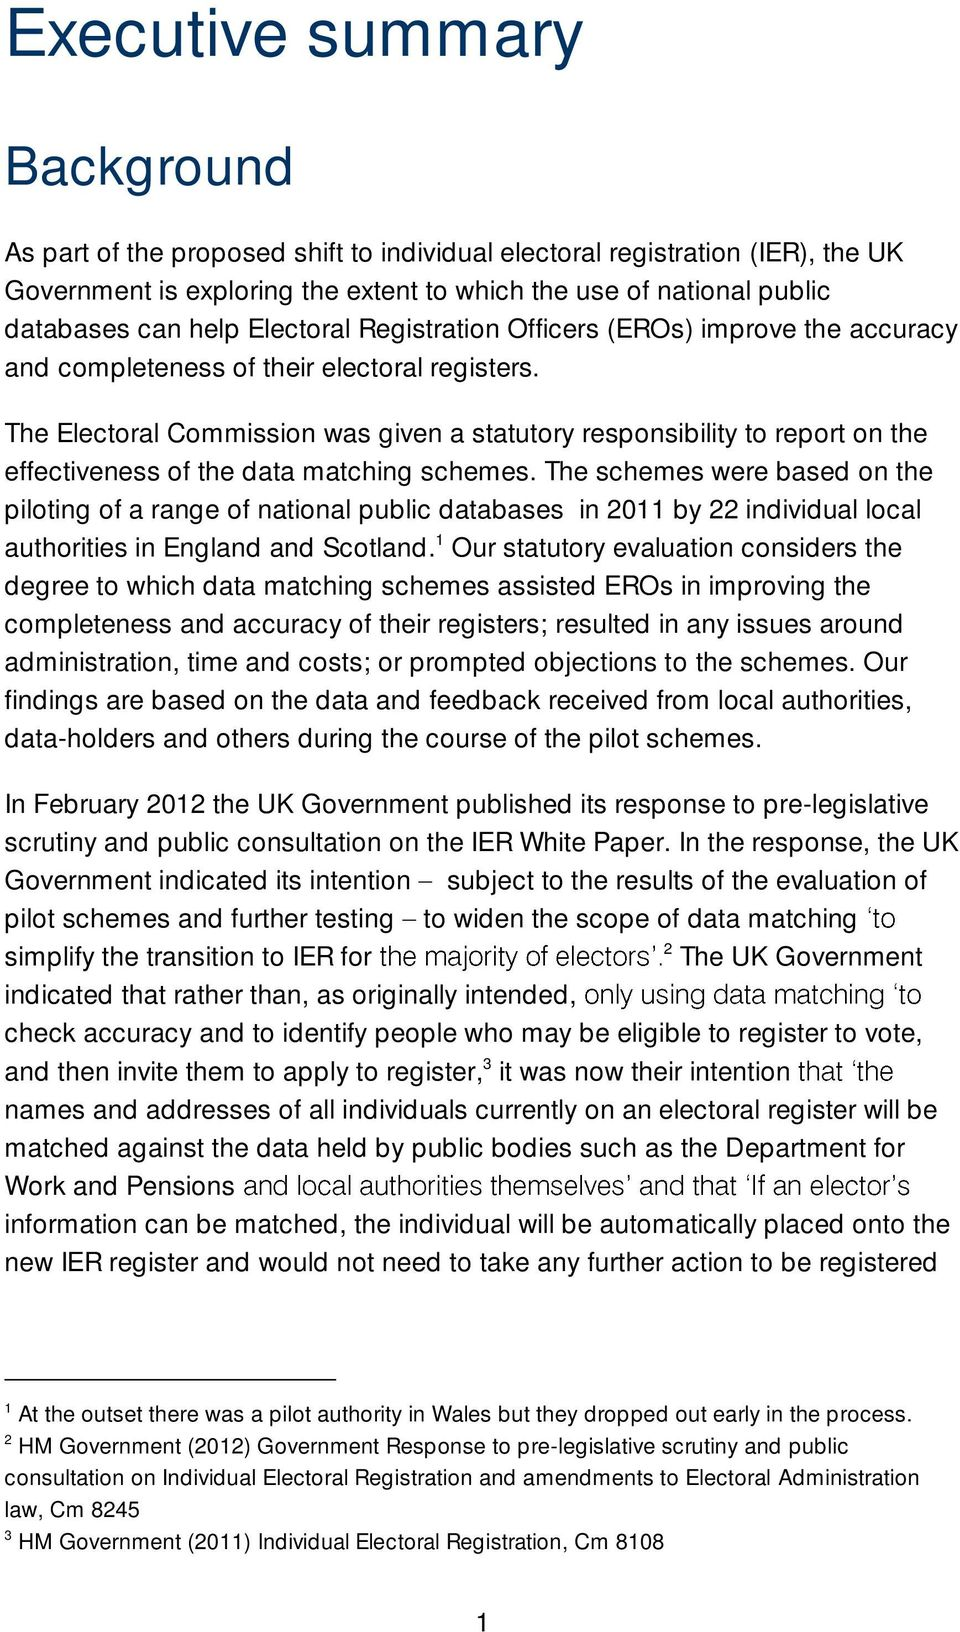 The Electoral Commission was given a statutory responsibility to report on the effectiveness of the data matching schemes.